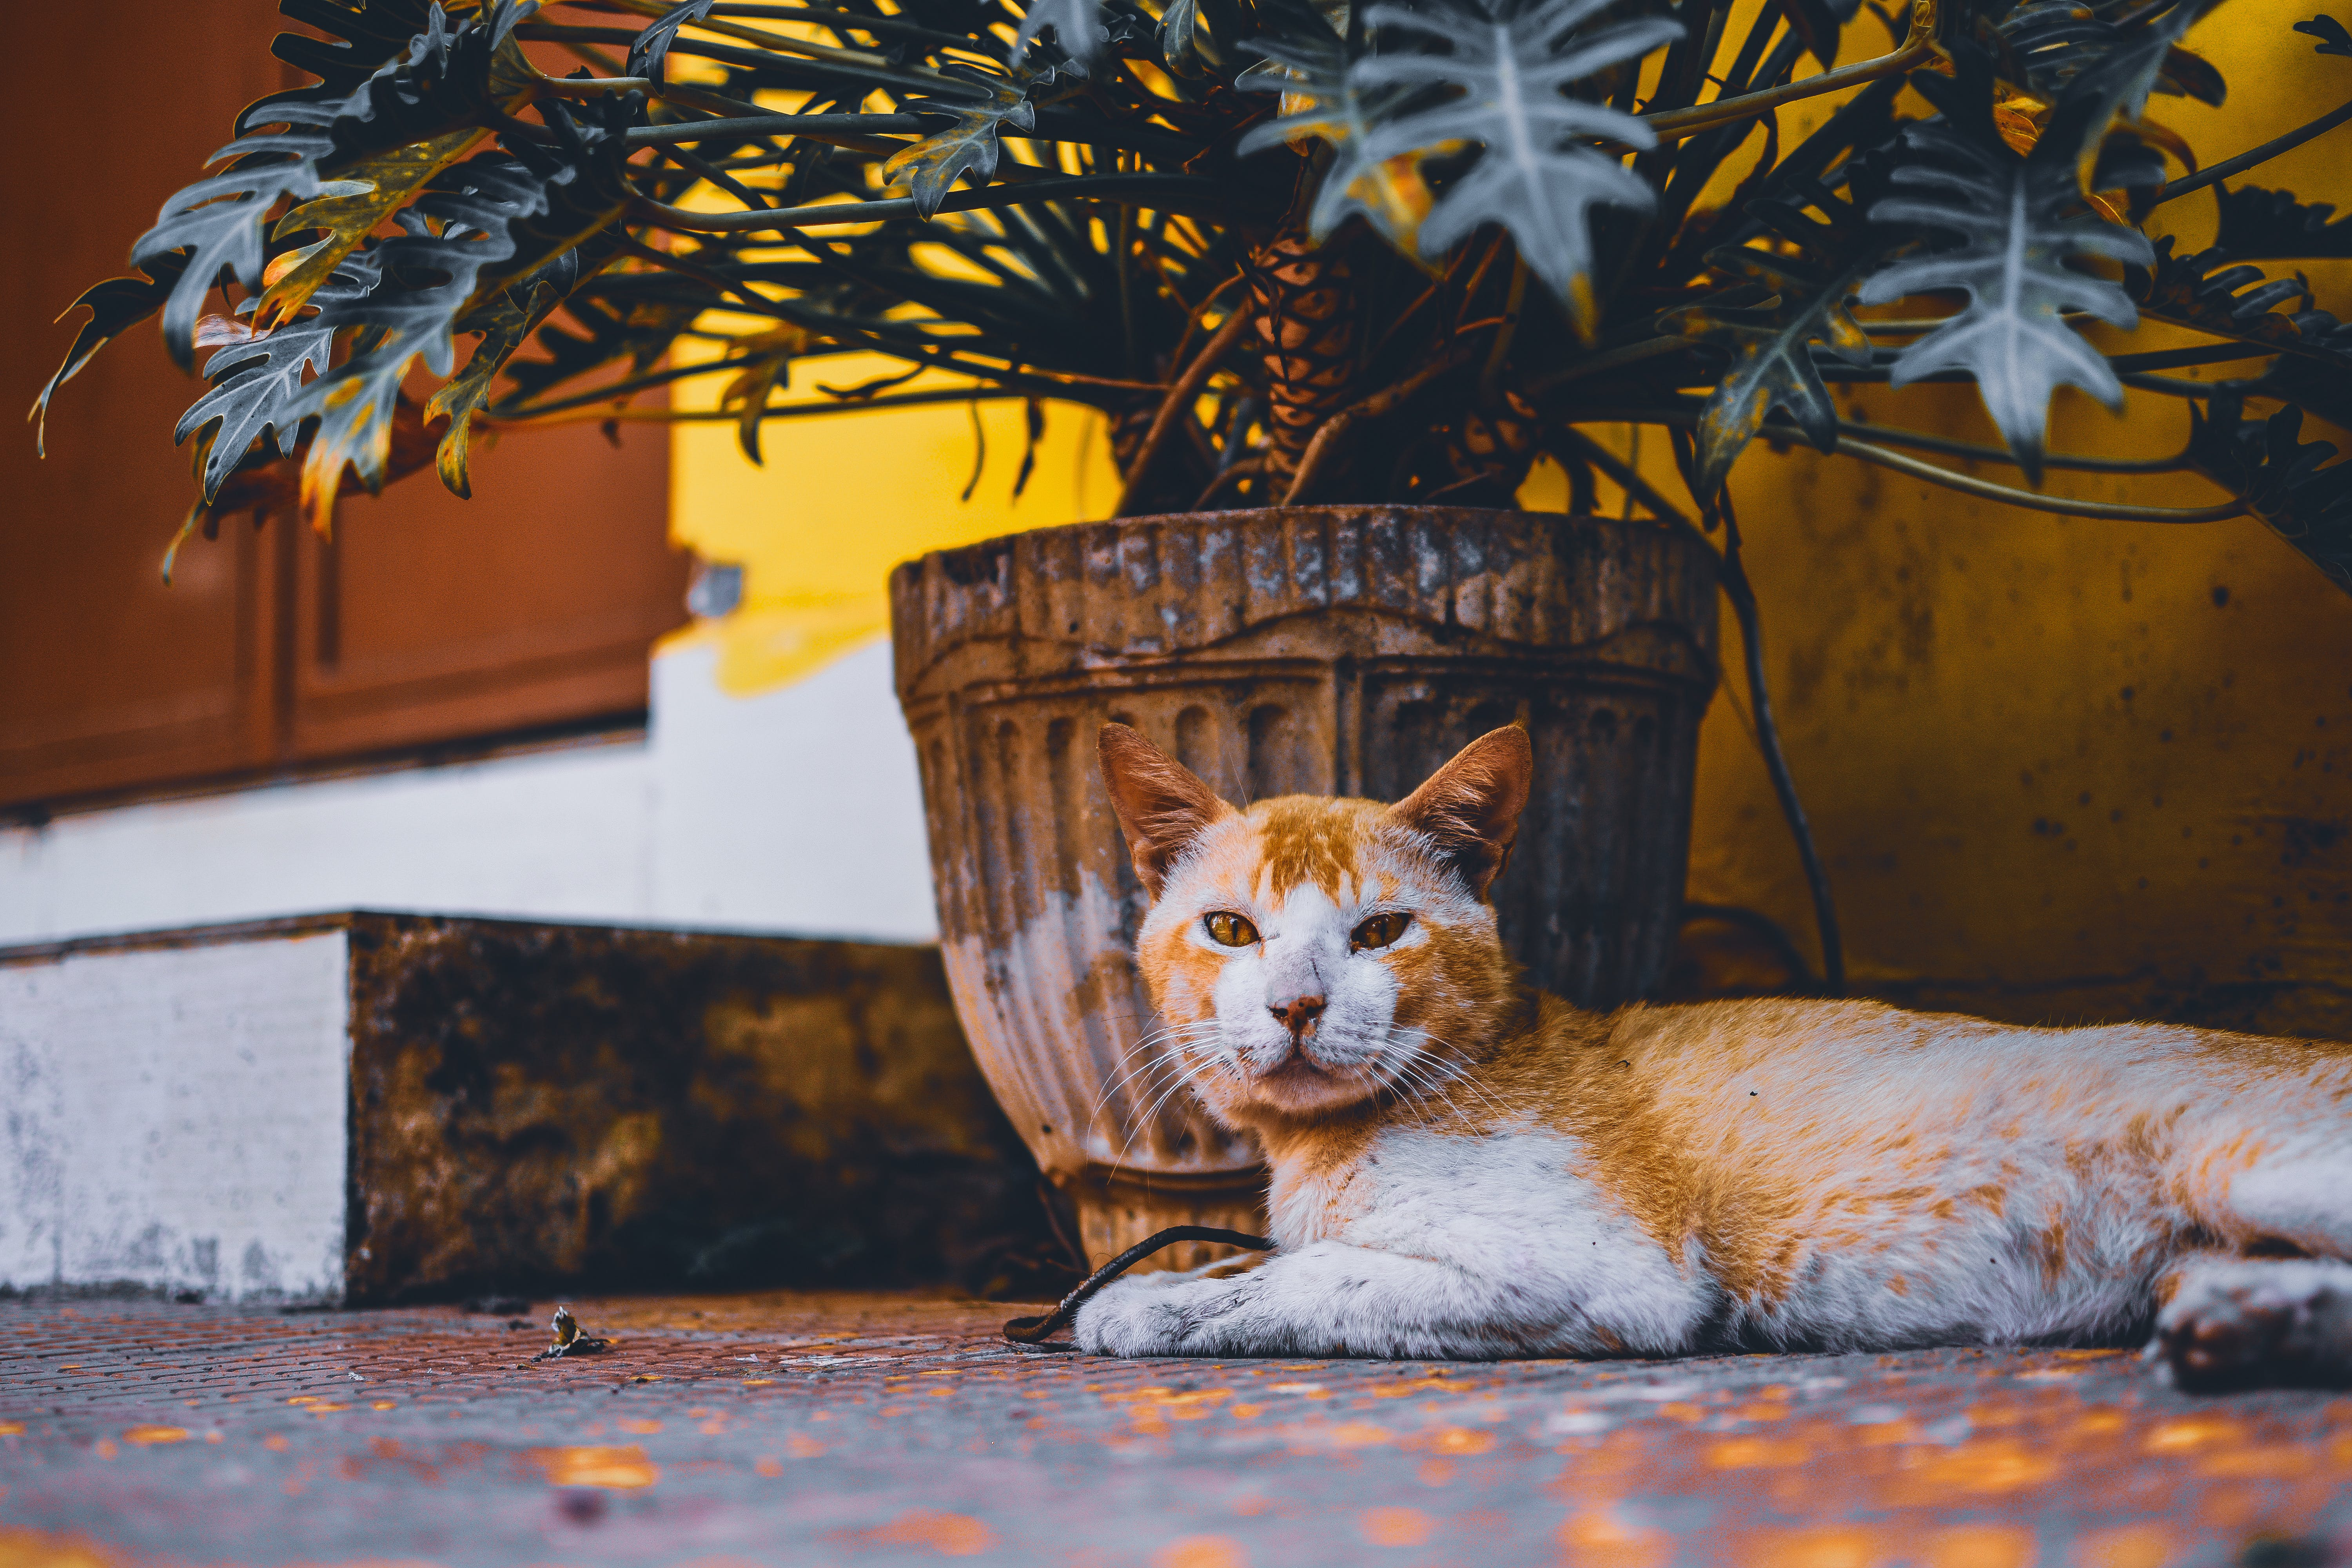 Short-fur Orange and White Cat Lies Next to Beige Plant Pot With Green Leaf Plant